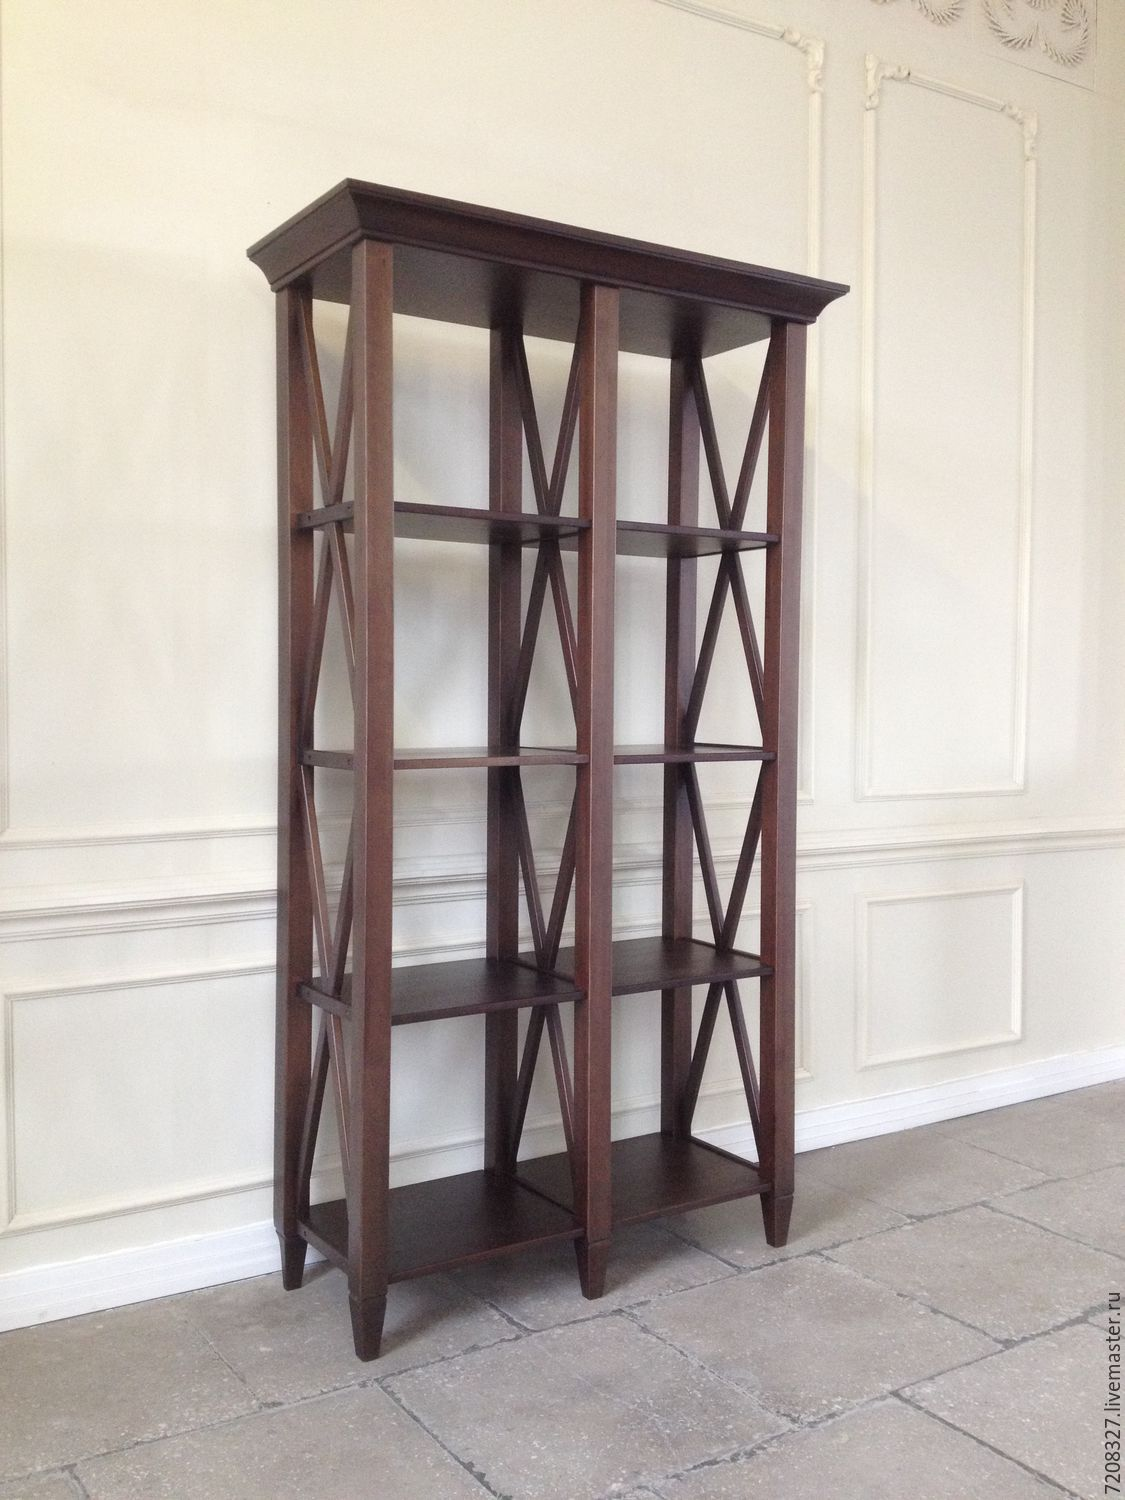 High shelving-library with open shelves and decor from intersecting details. The difference in color, size, materials is possible, due to manual work.